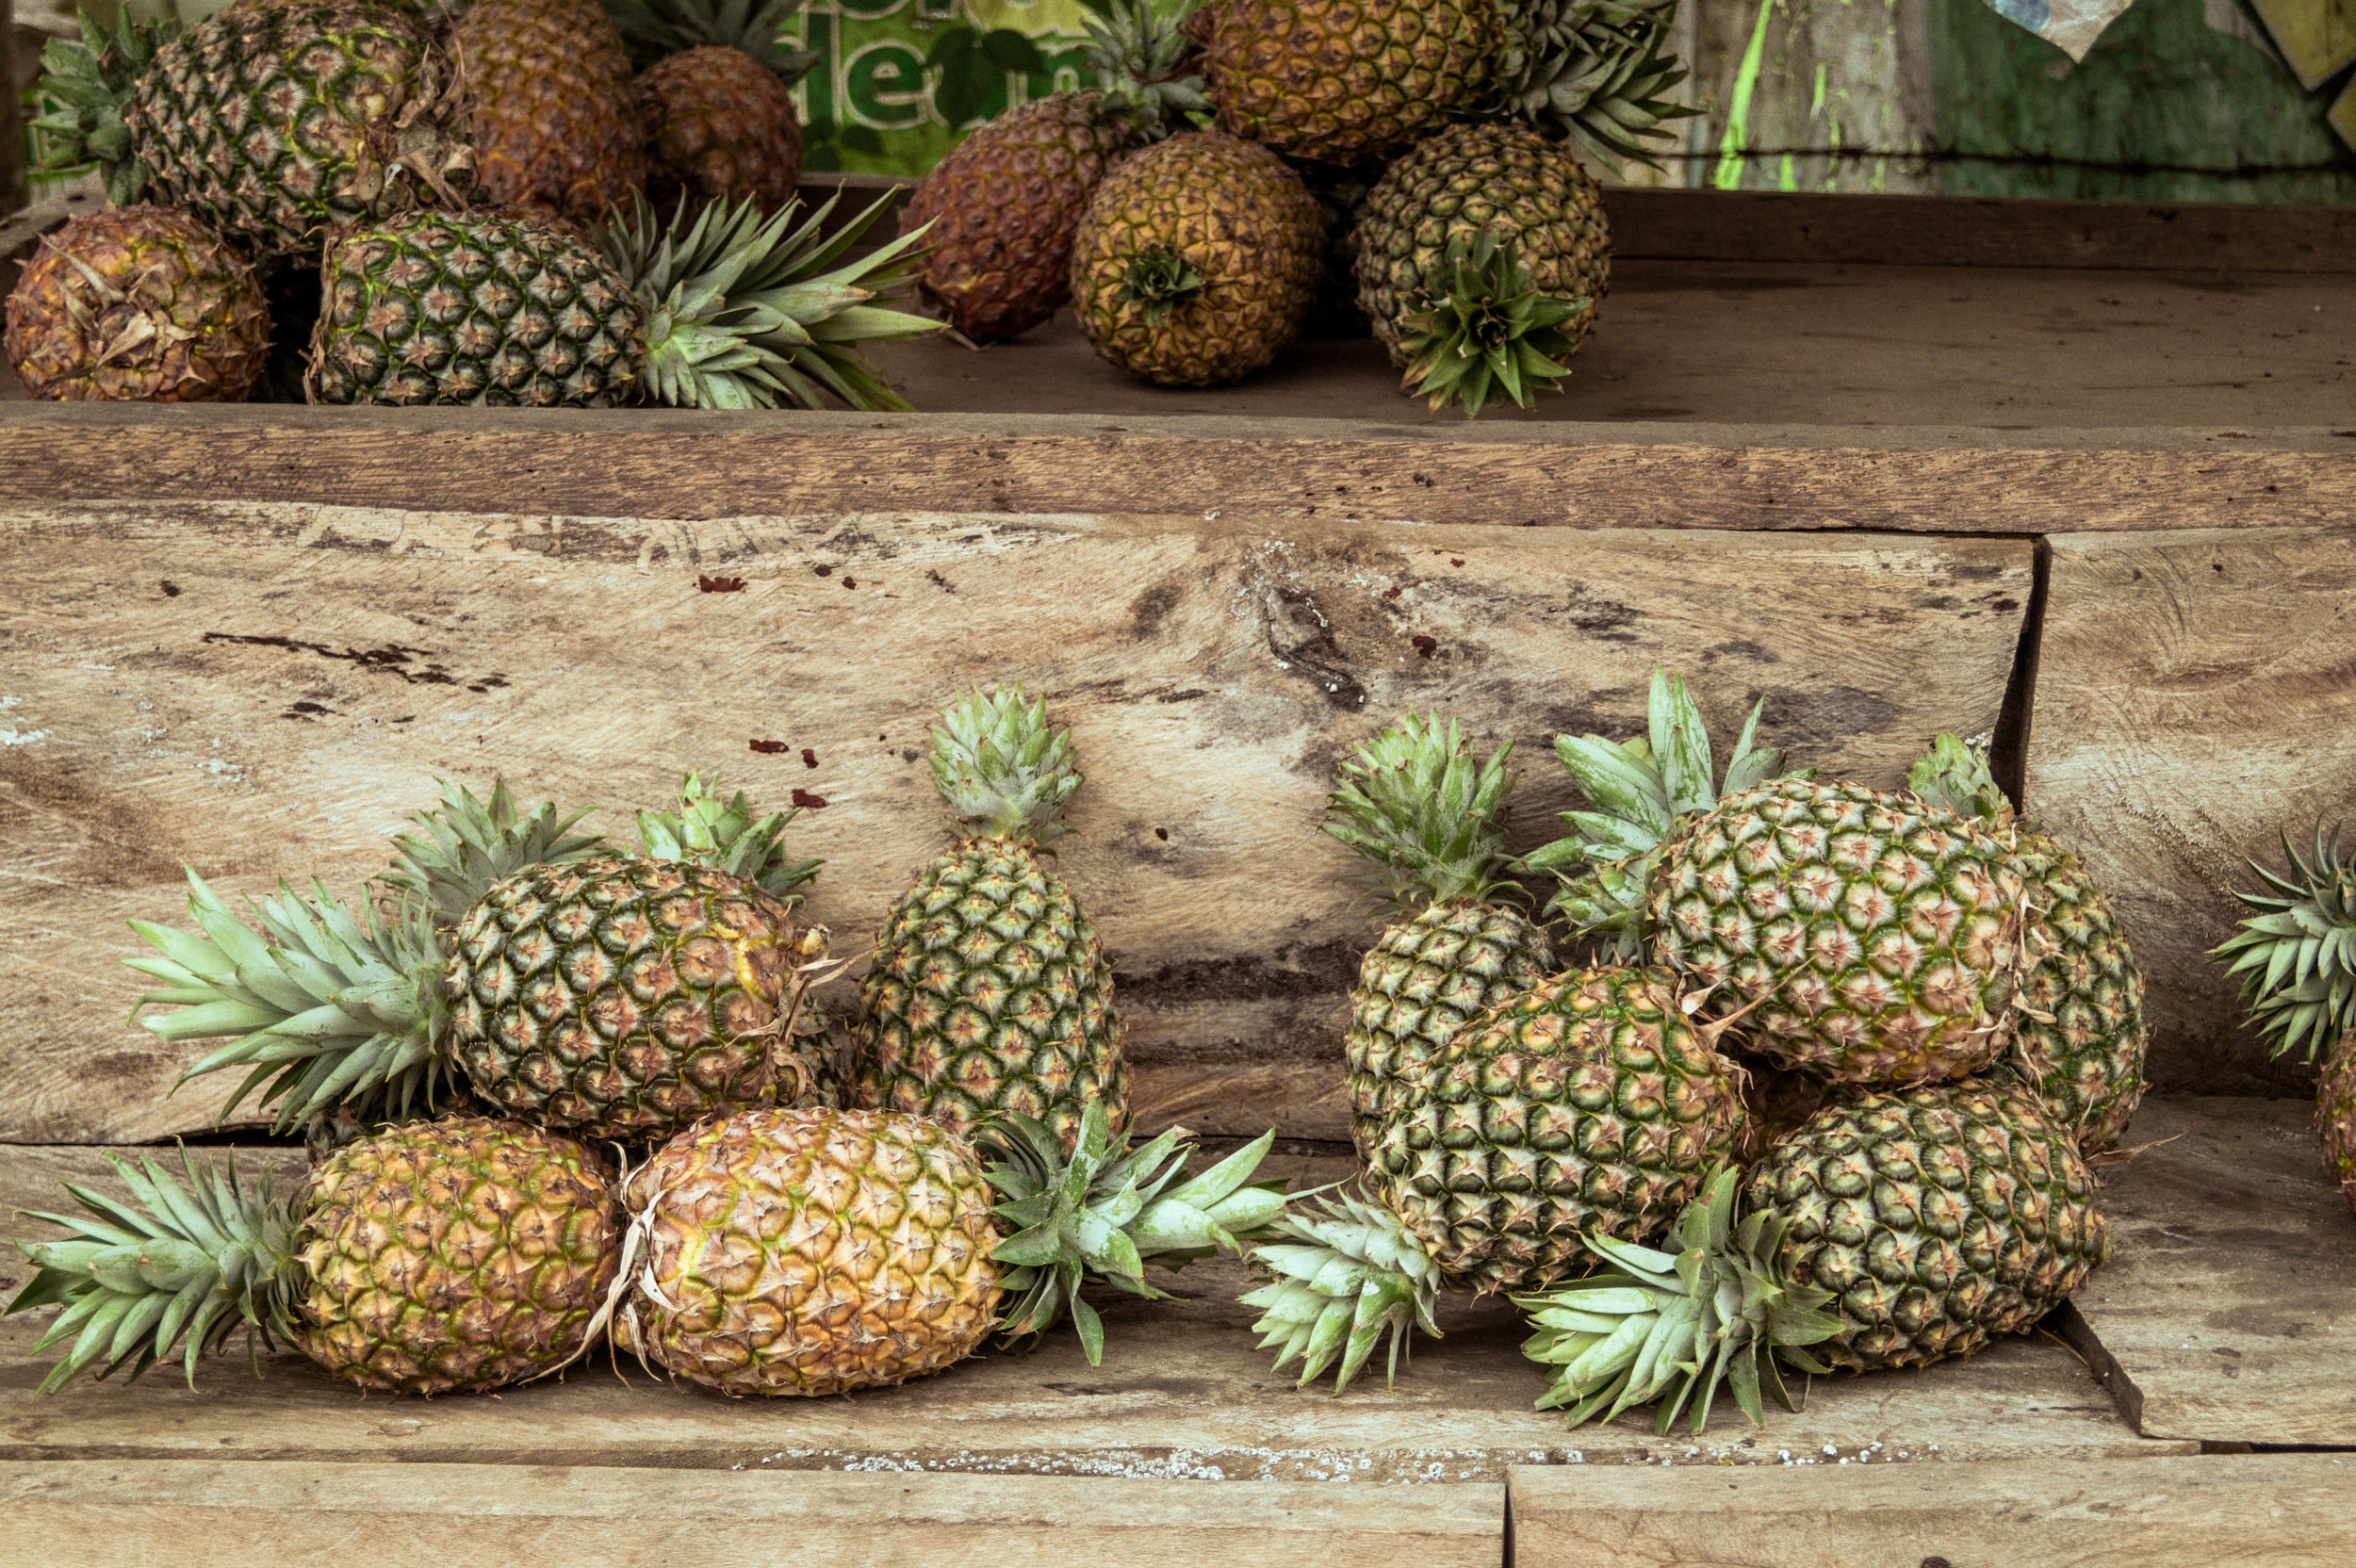 Small Philippine pineapples on a rustic wooden bench